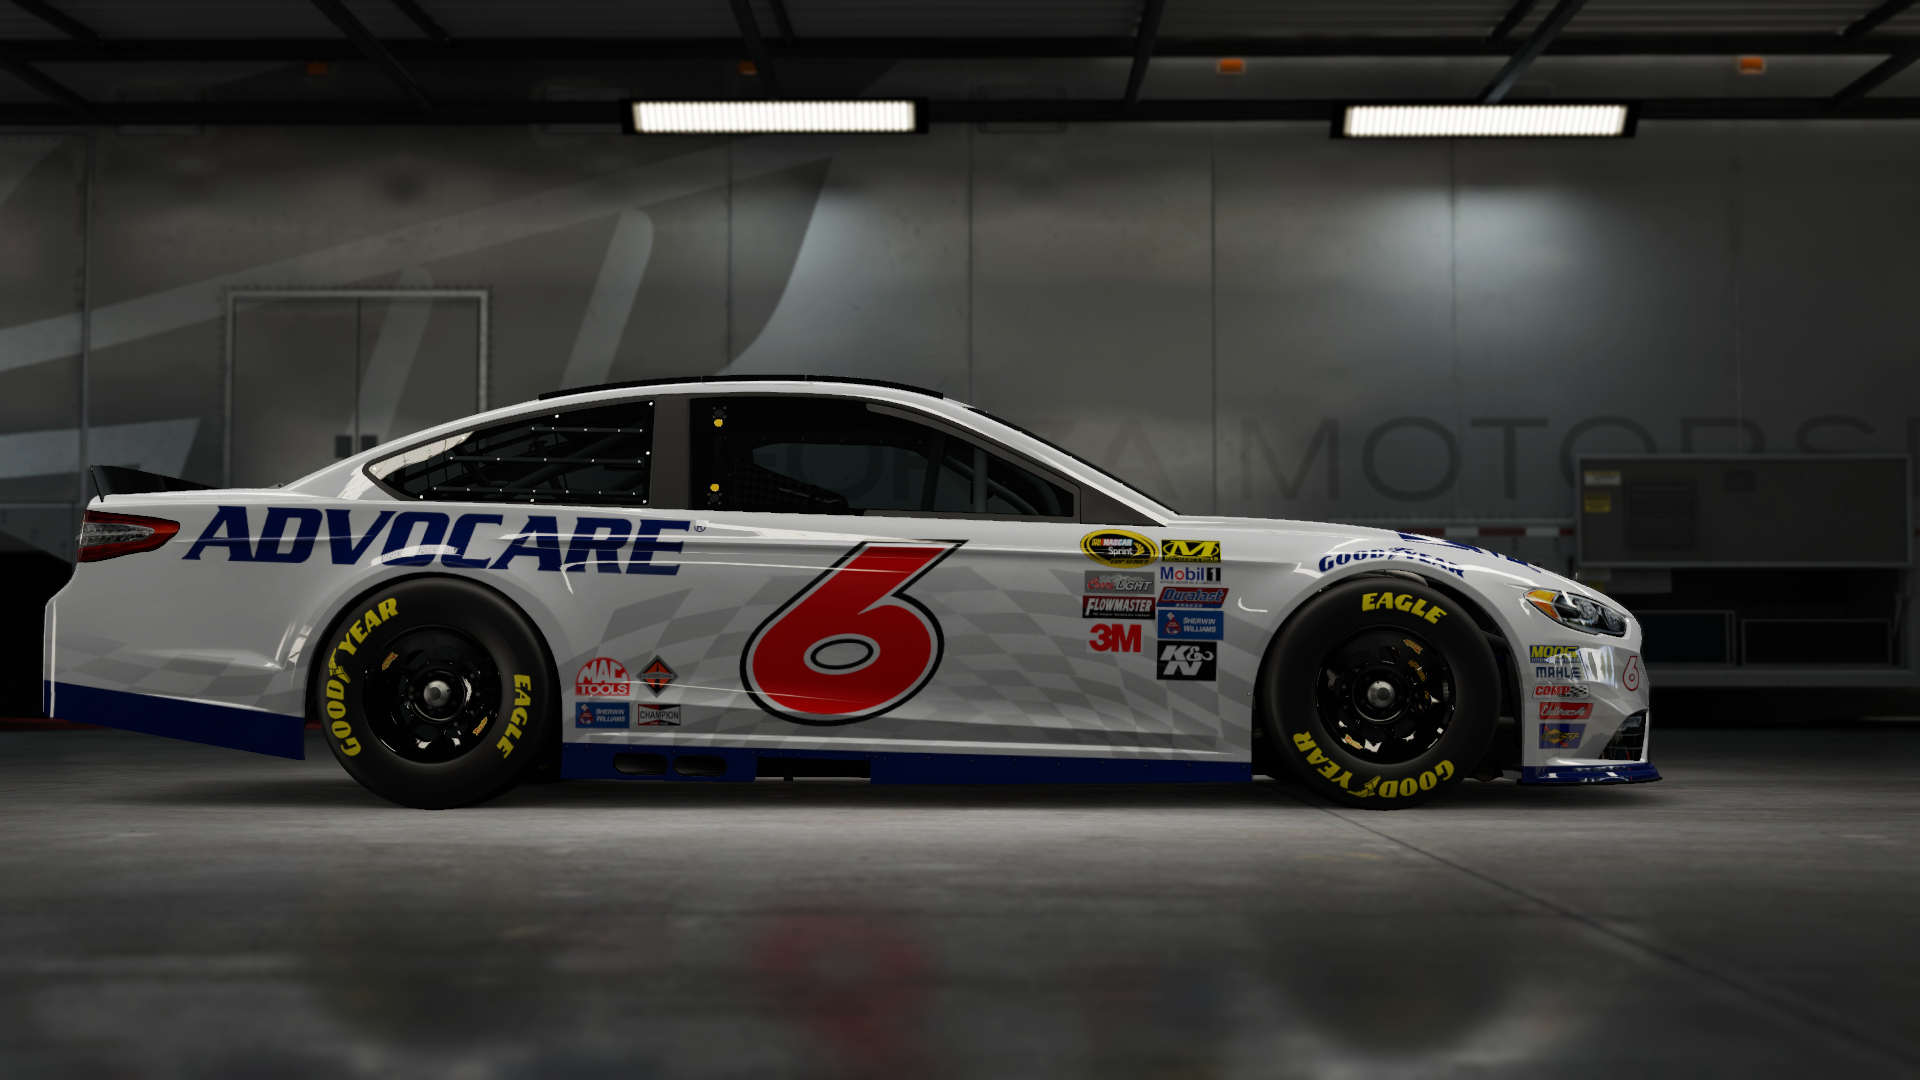 On the Team Penske 'Brad K.' Ford Fusion, Made by SweedishThunder